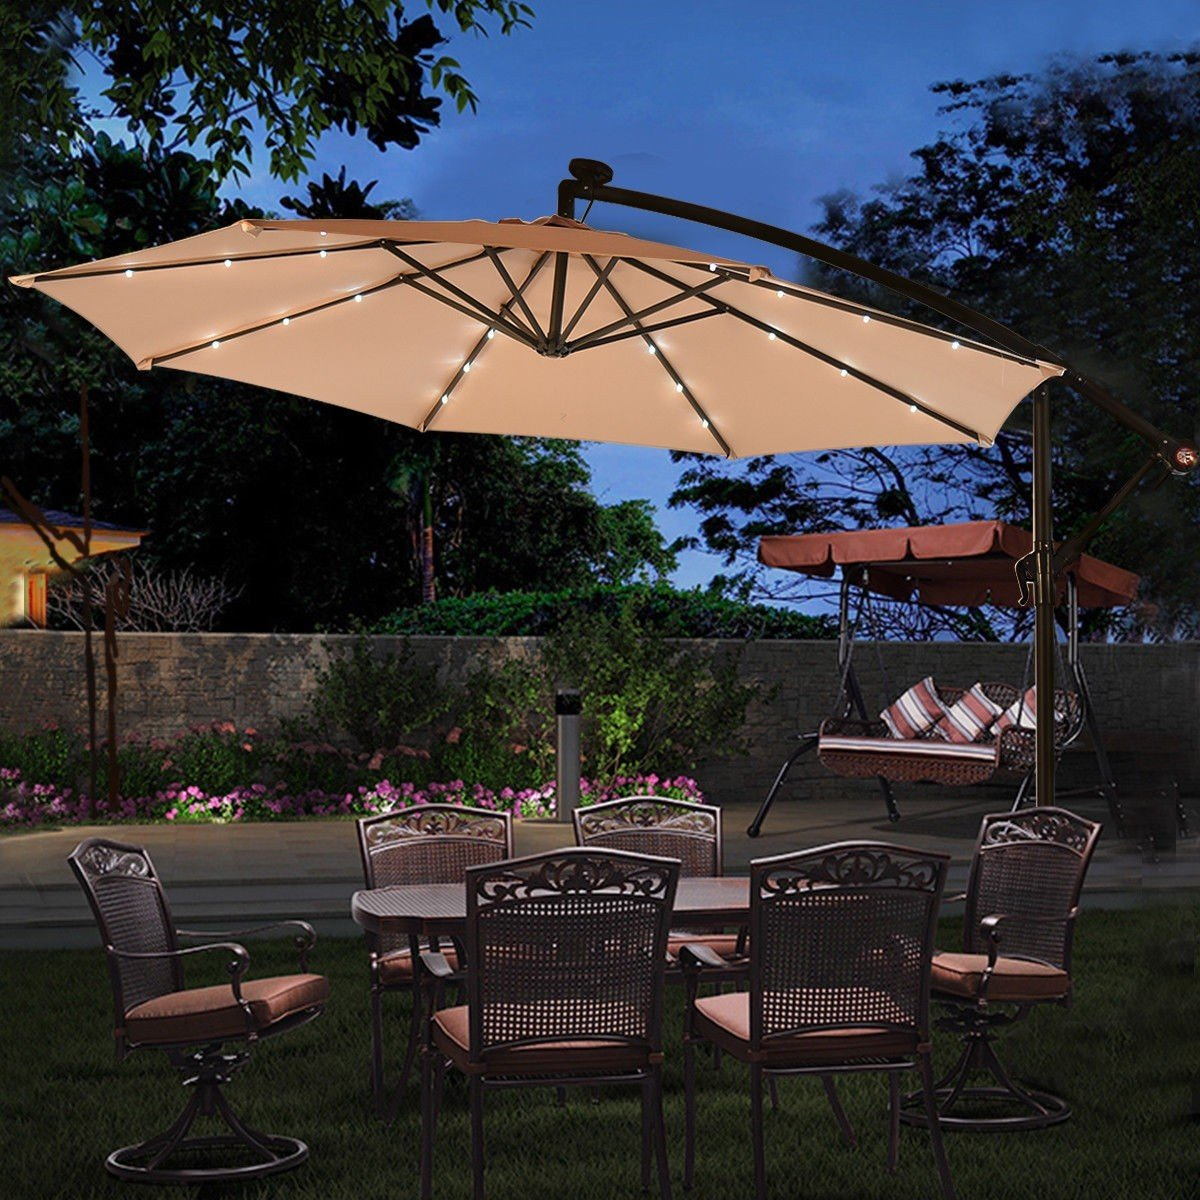 Pin By Establishentiree On Patio Designs Bro In 2020 Outdoor Shade Patio Umbrellas Patio Sun Shades